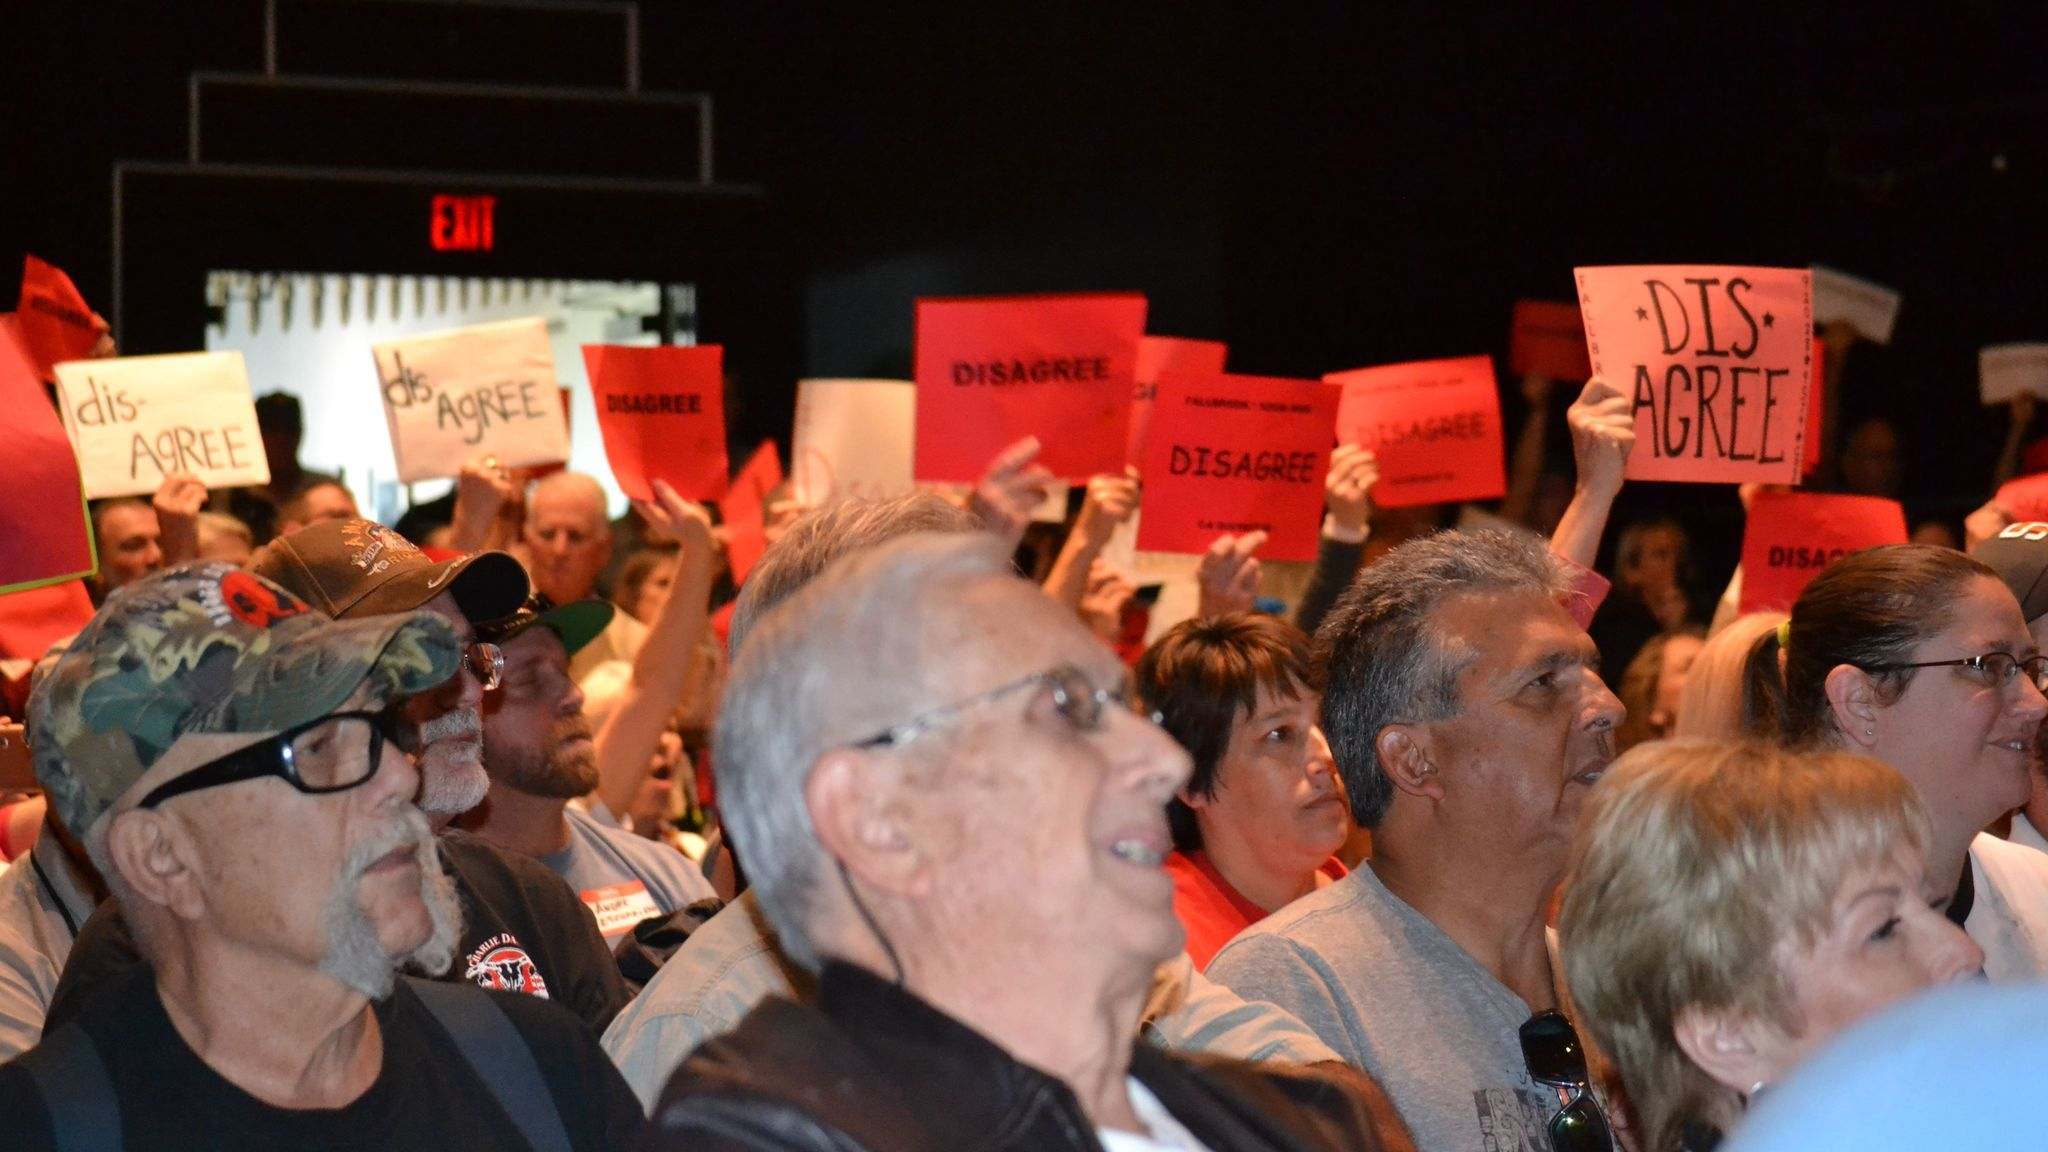 """Many inside the Ramona Mainstage hold up signs saying """"disagree"""" in response to a comment made by Congressman Duncan Hunter."""